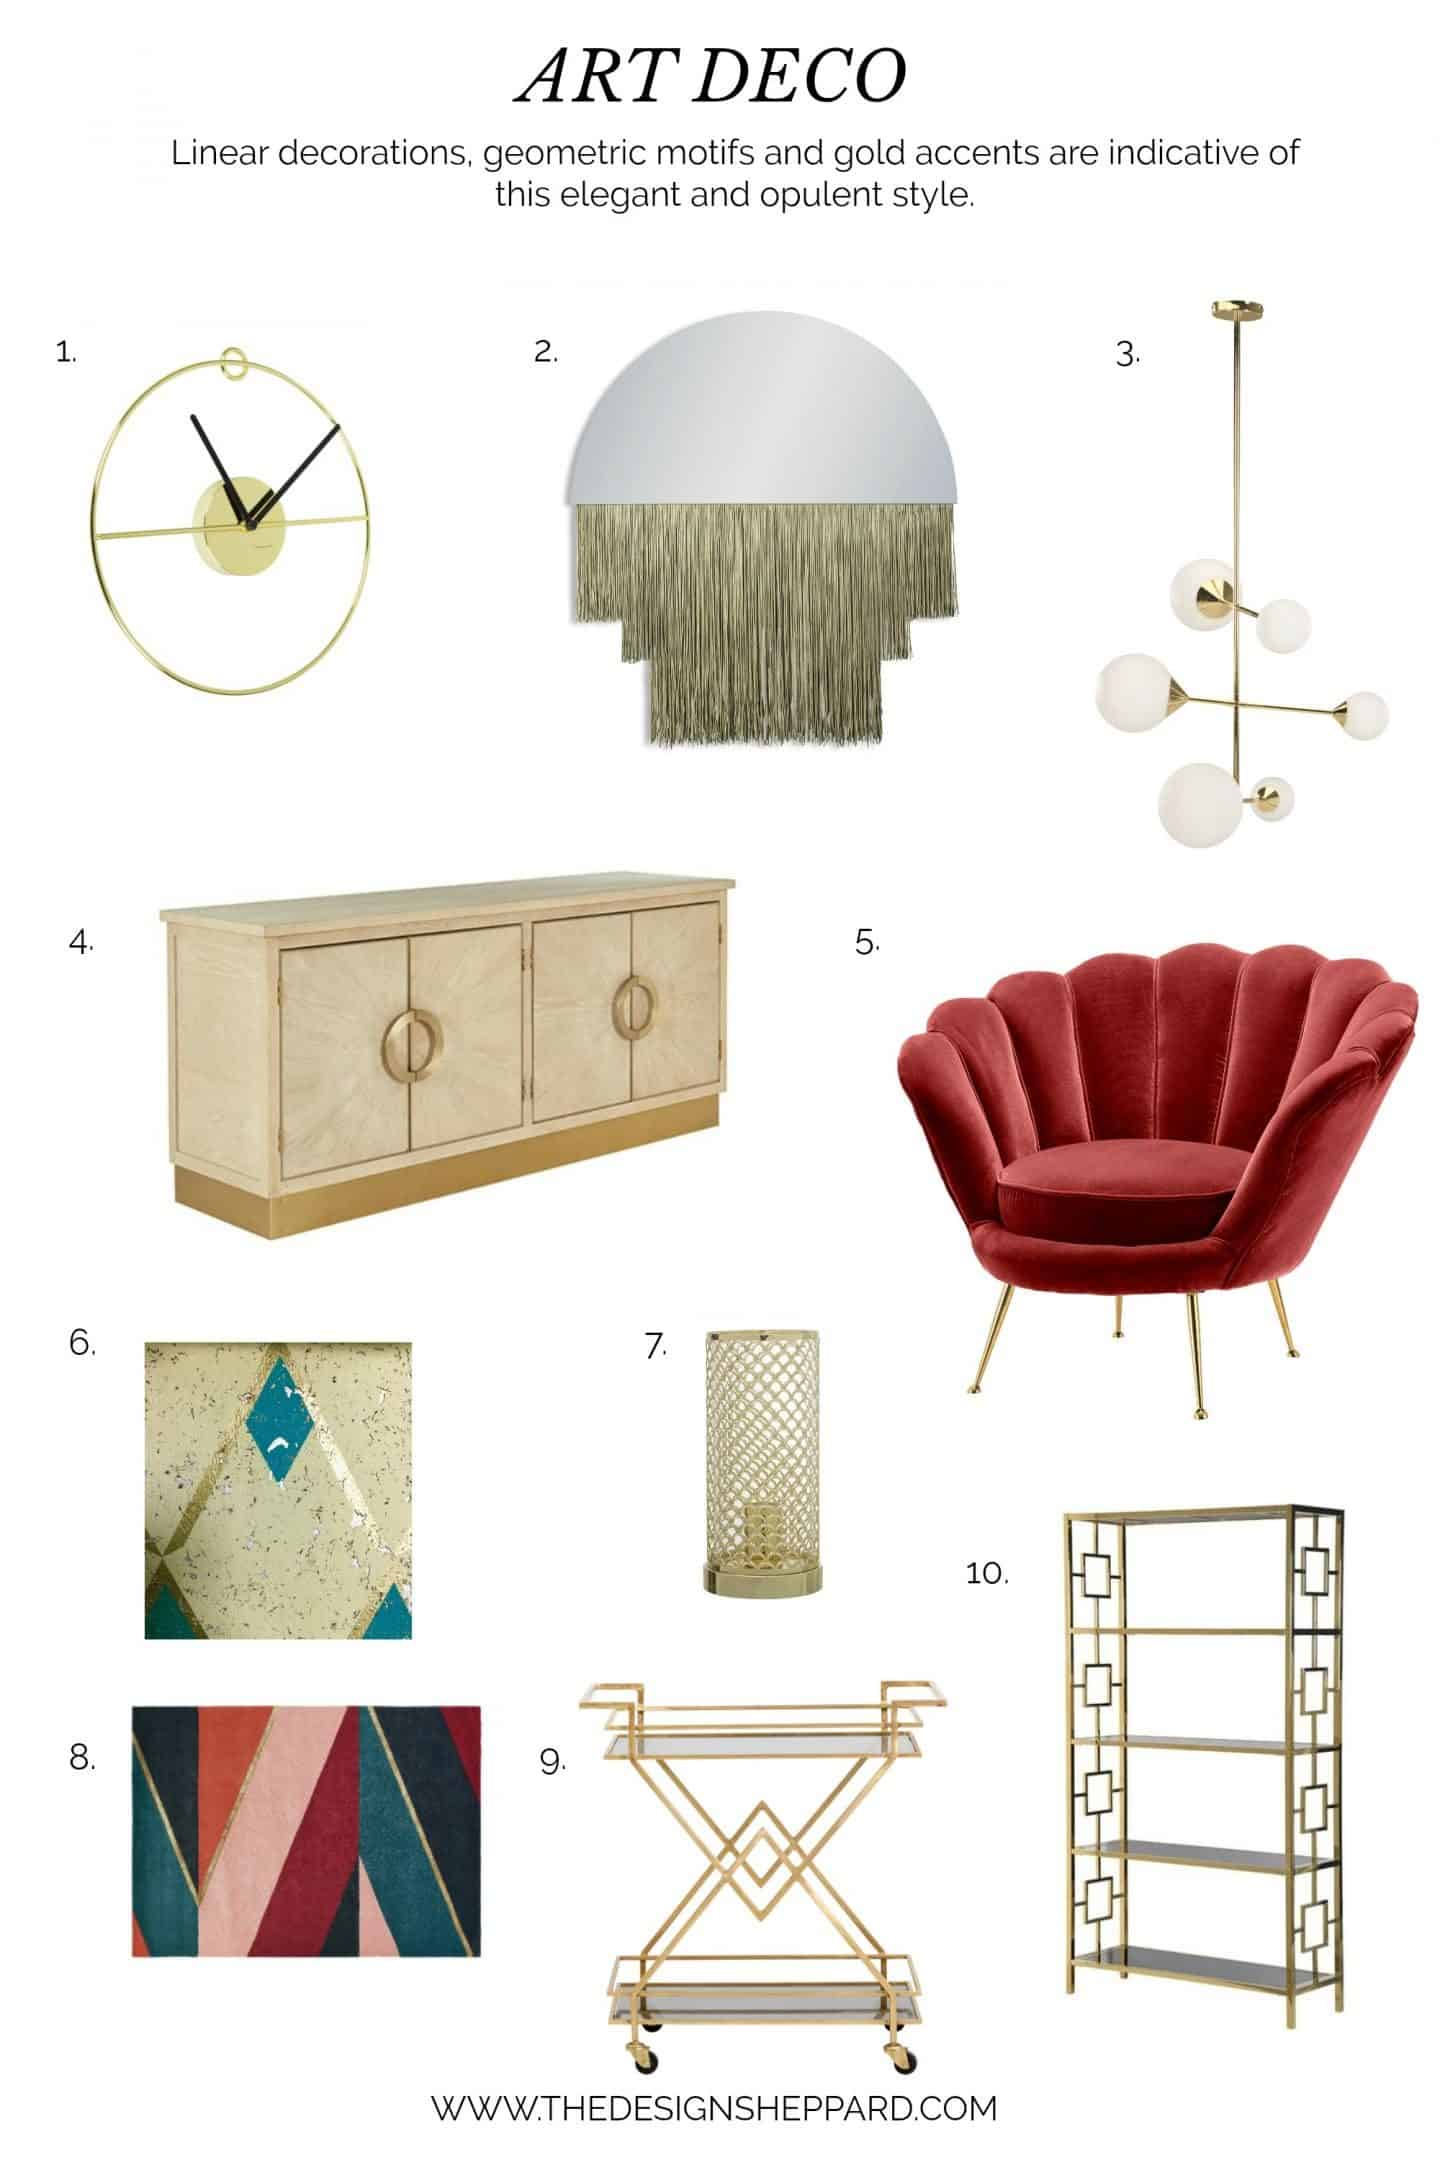 Interior Design Trend Art Deco